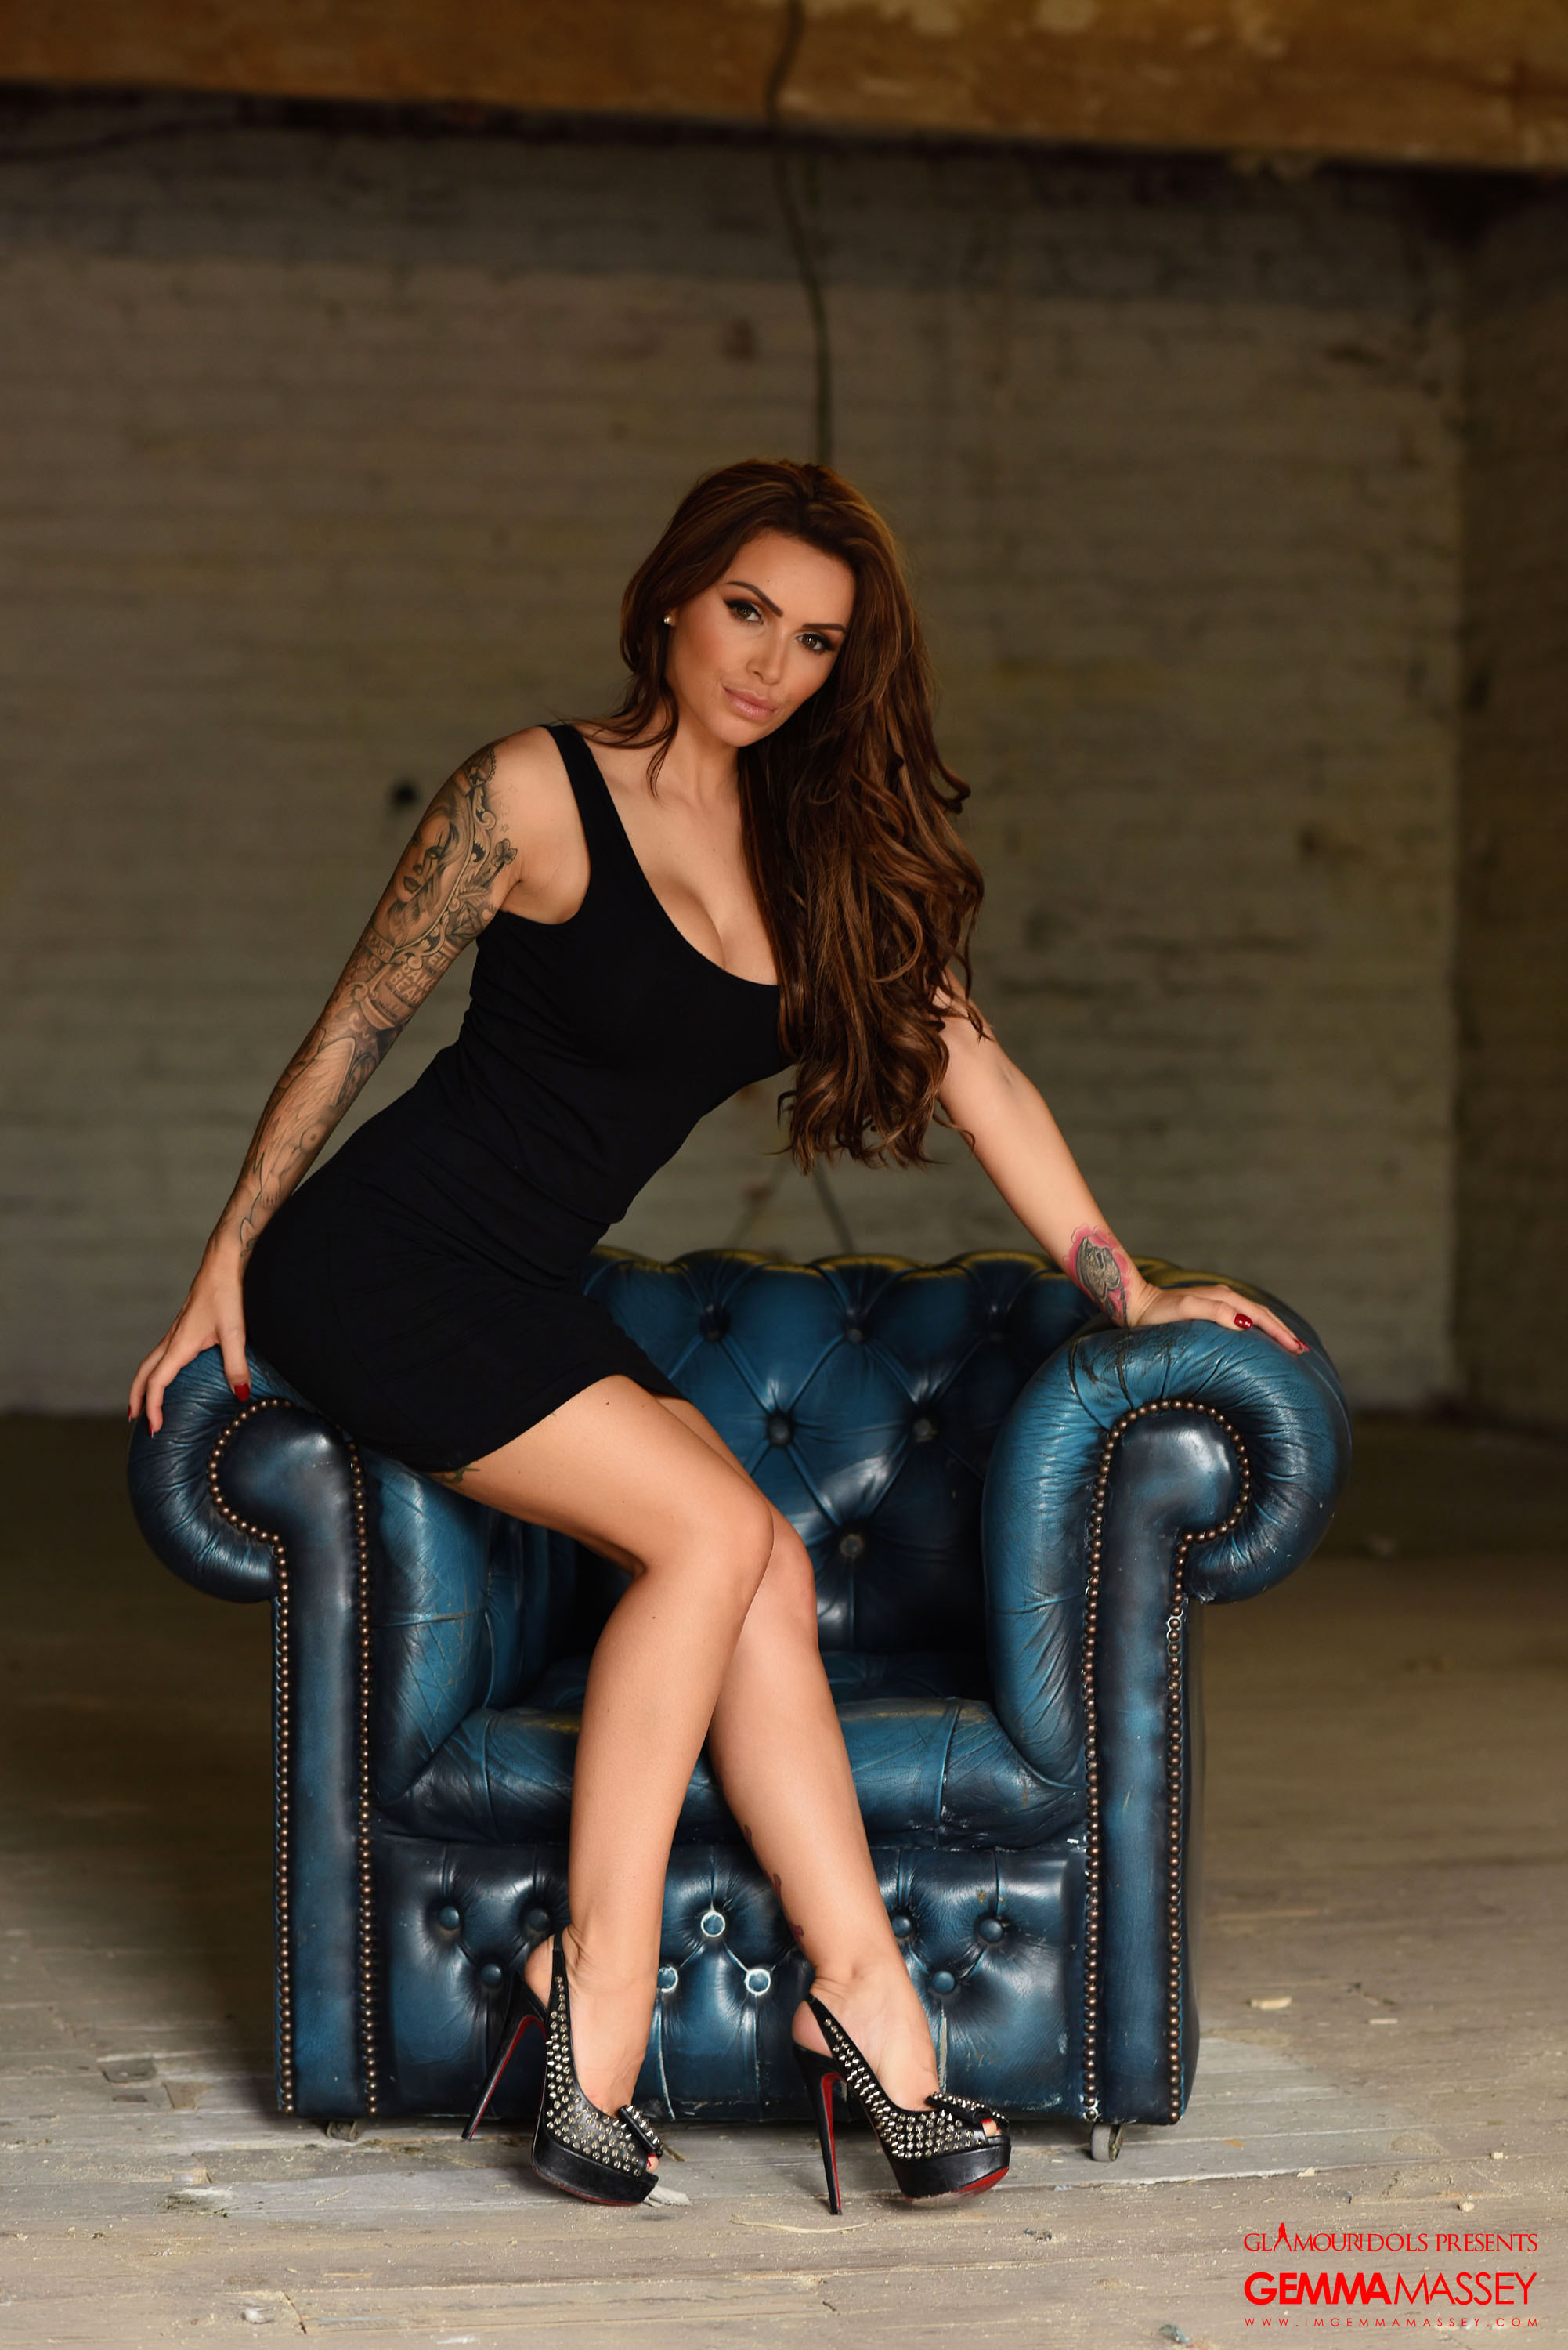 TIGHT BLACK DRESS IS WHAT GEMMA MASSEY IS SHOWCASING HER HOT ...